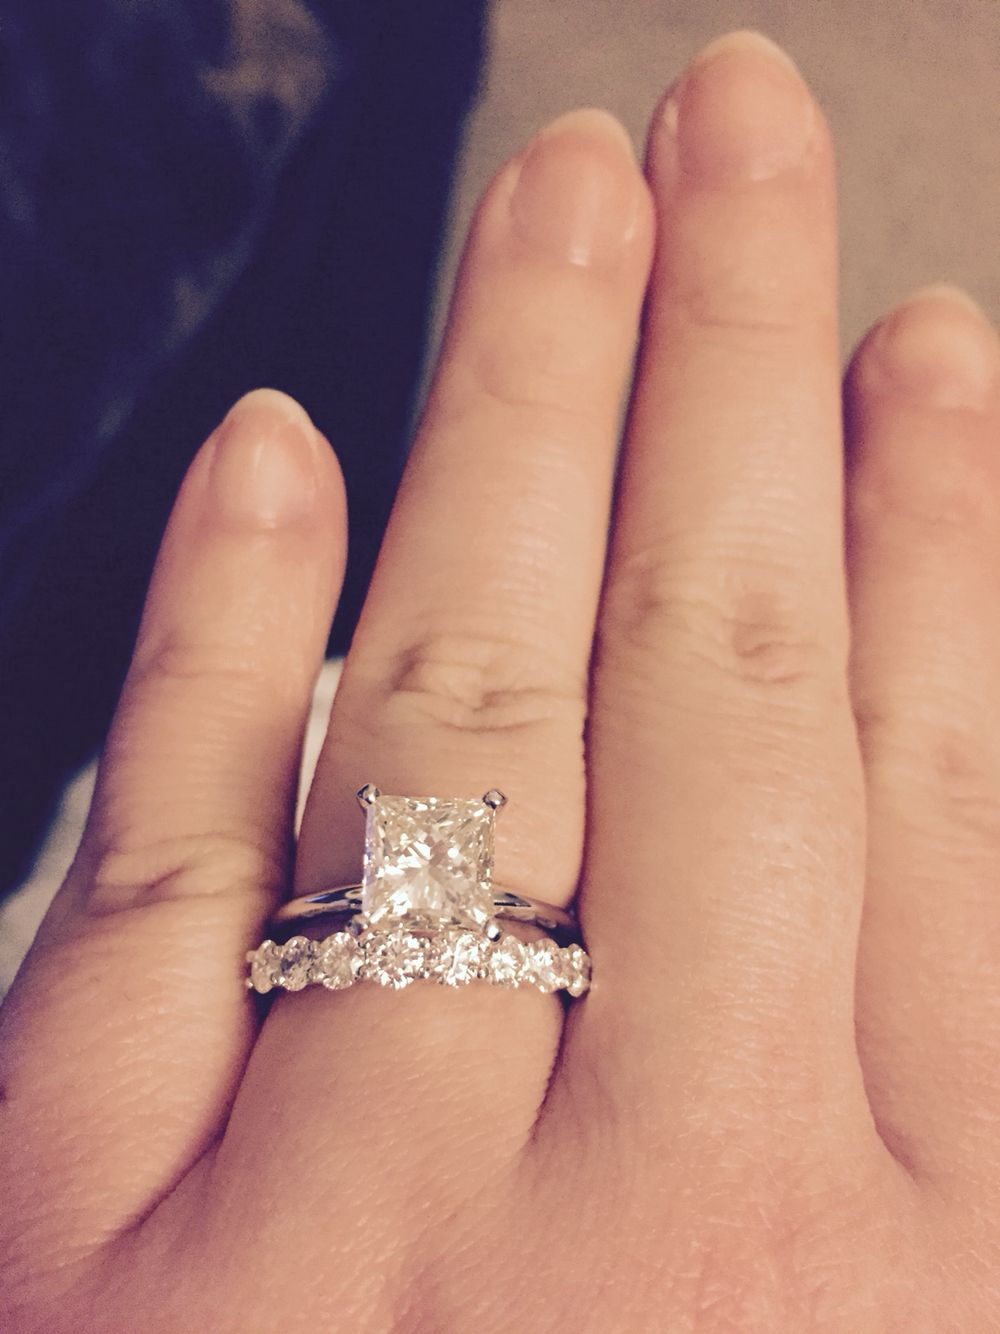 My Wedding Set From Kesslers In W Madison Wi Clic And Beautiful I Am So Hy